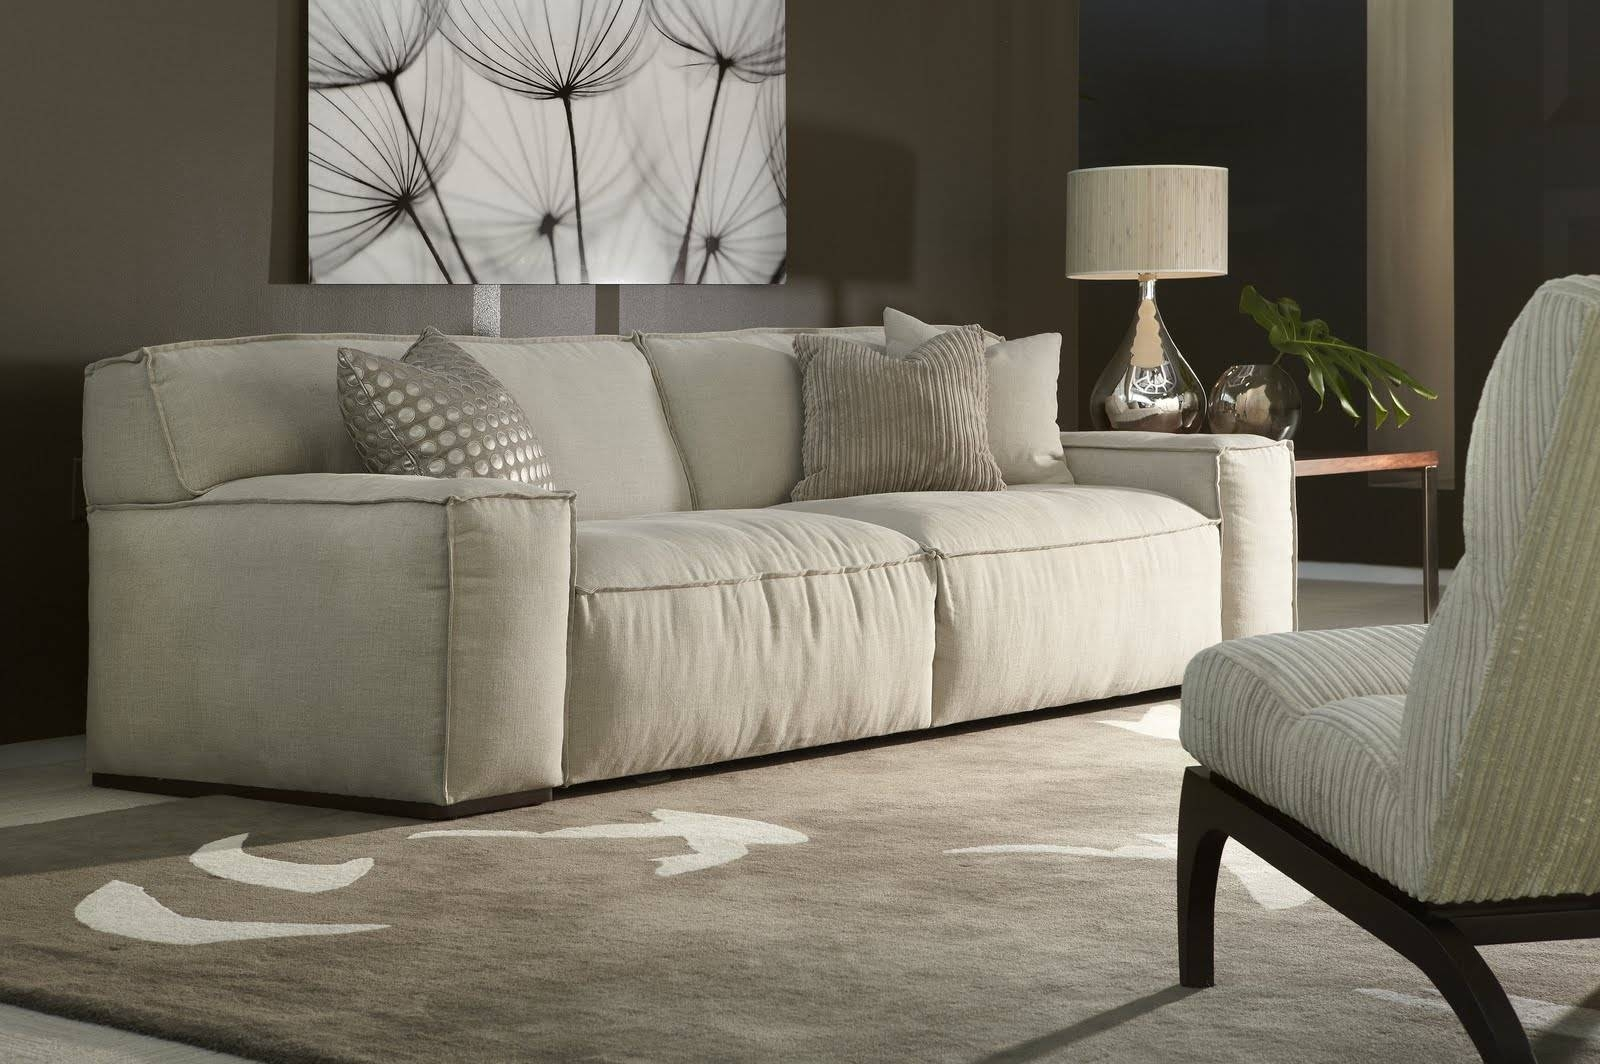 Sofas Center : Small Down Sectional Sofa Menzilperde Net throughout Down Sectional Sofa (Image 21 of 25)